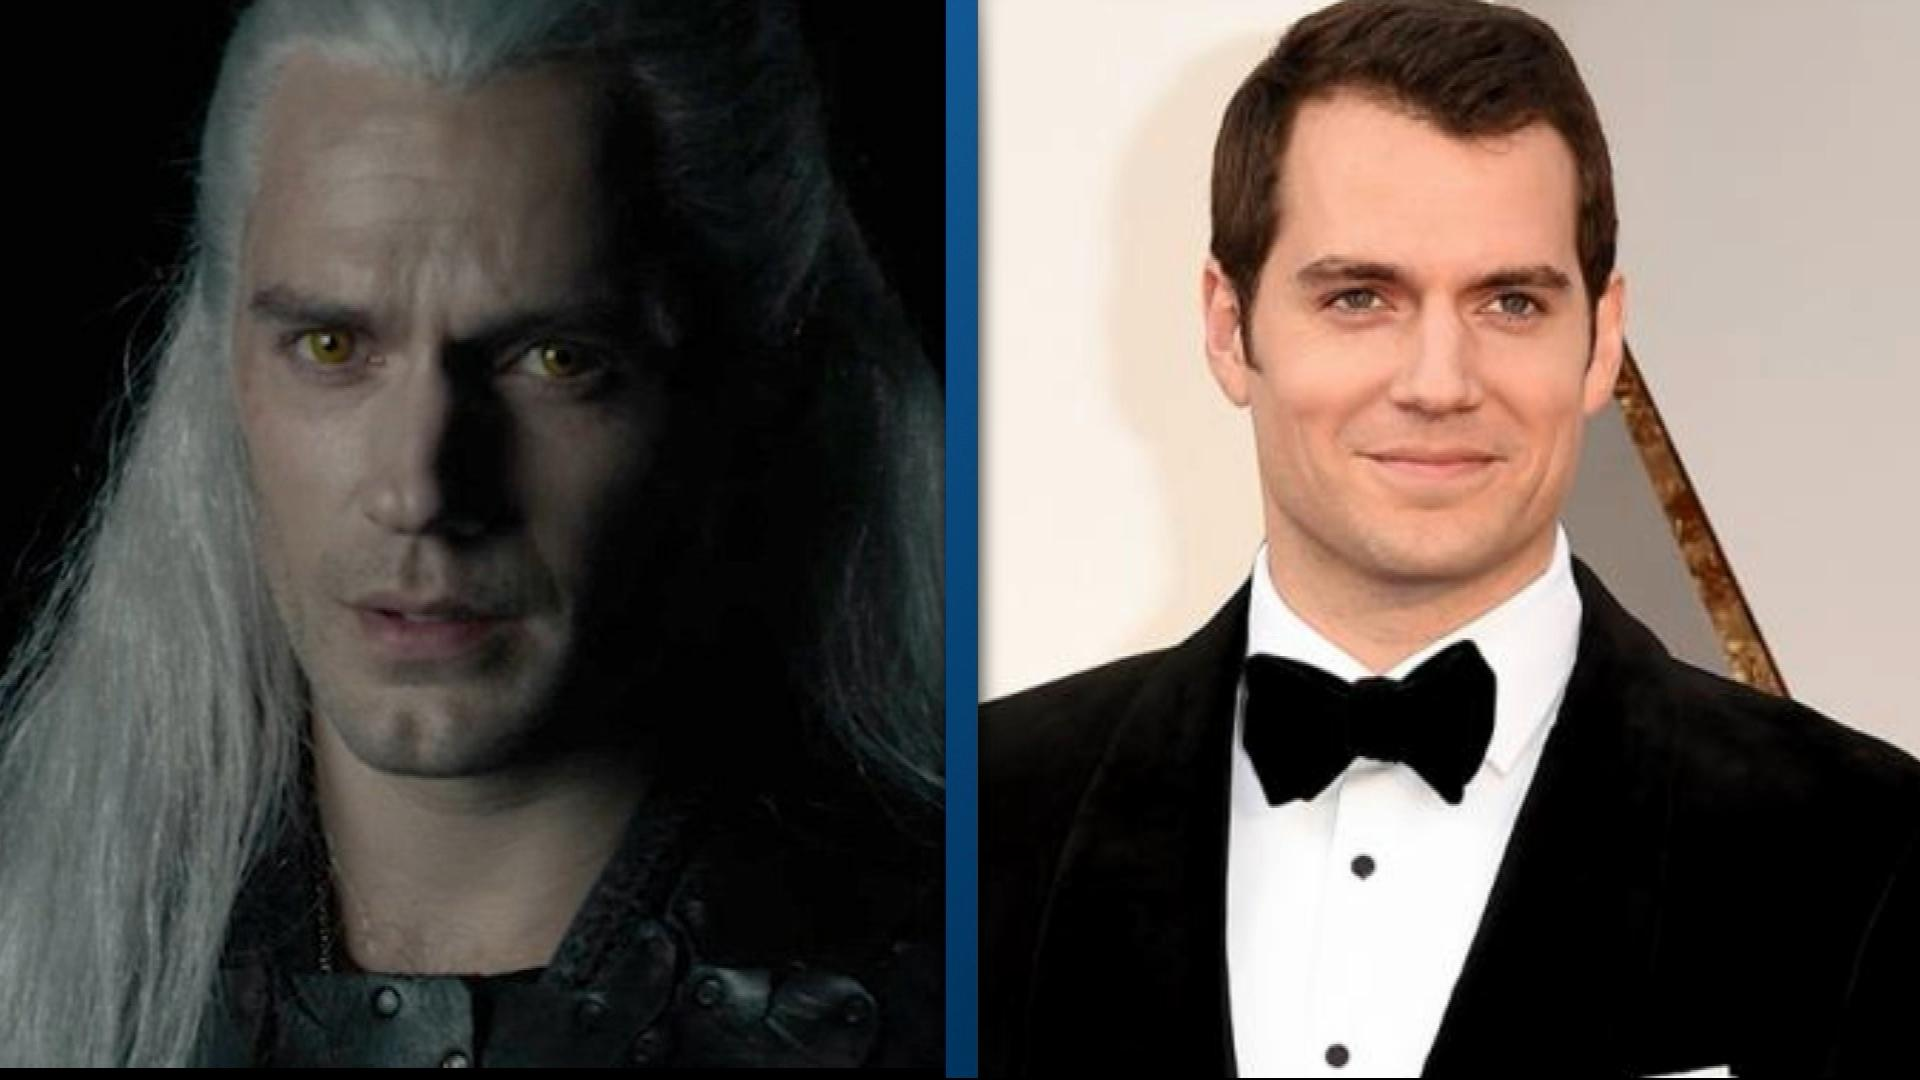 The Witcher': First Look at Henry Cavill as Geralt of Rivia